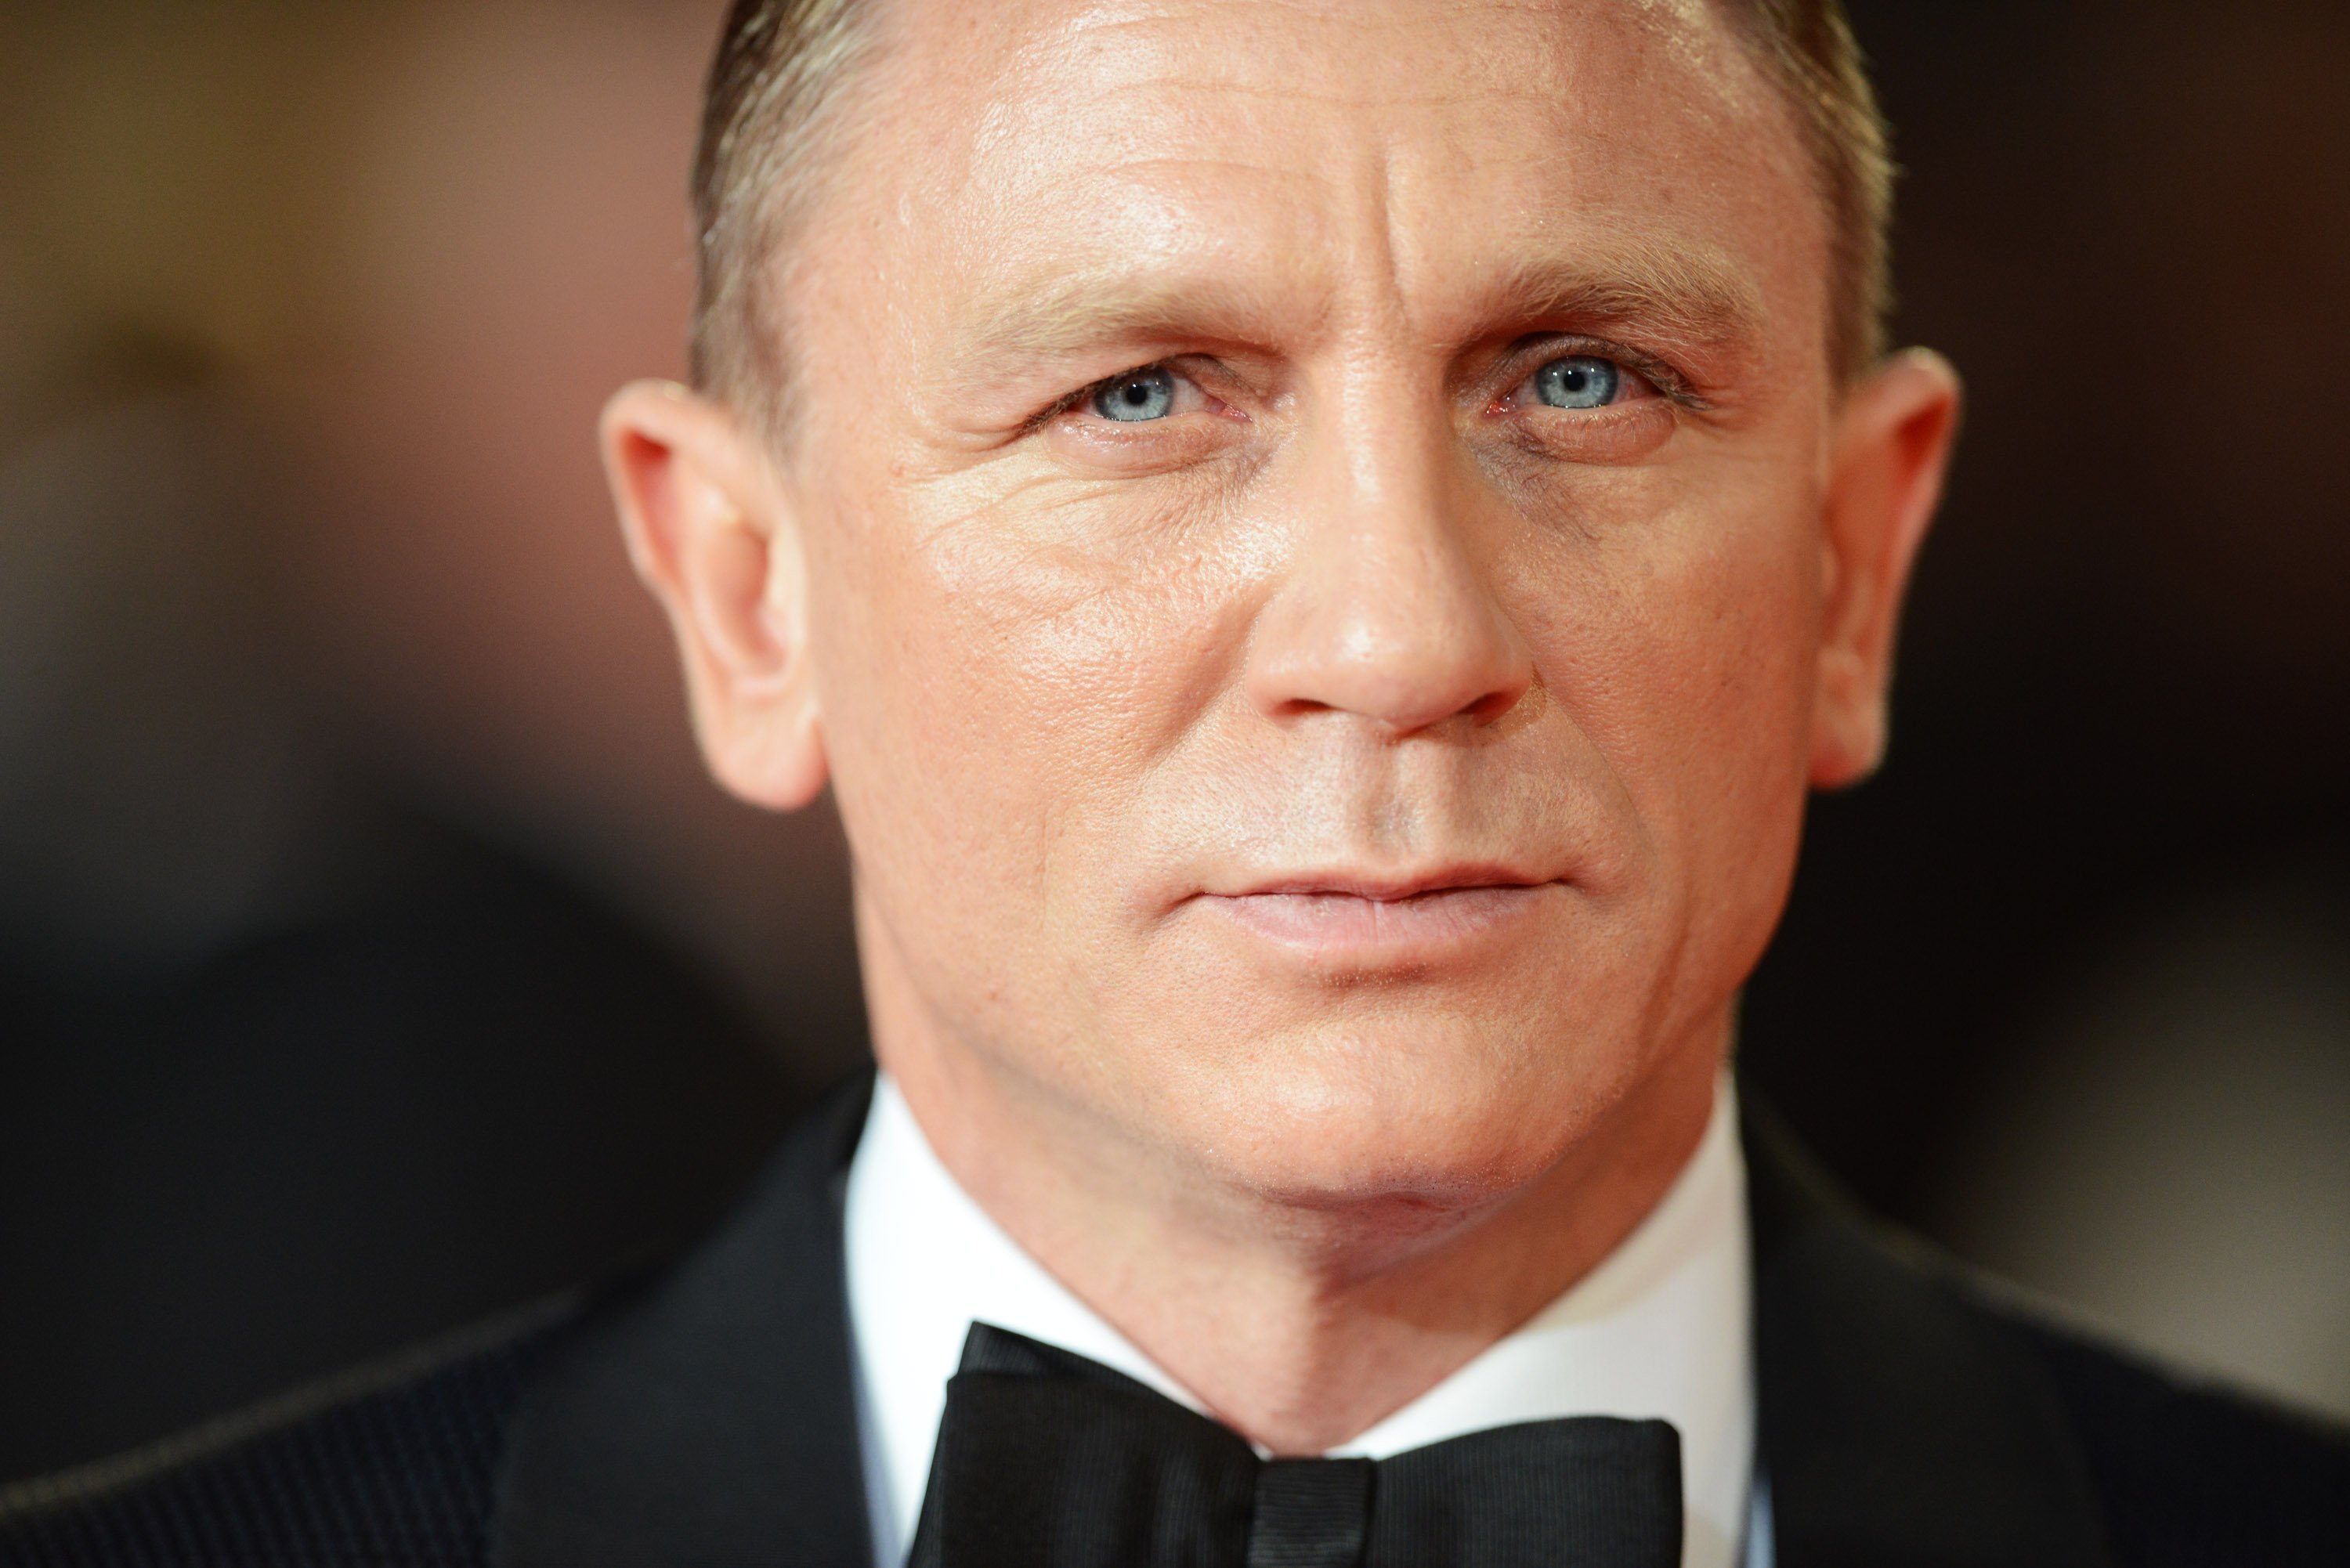 Daniel Craig attends the Royal world premiere of 'Skyfall' on October 23, 2012, in London, England. | Source: Getty Images.